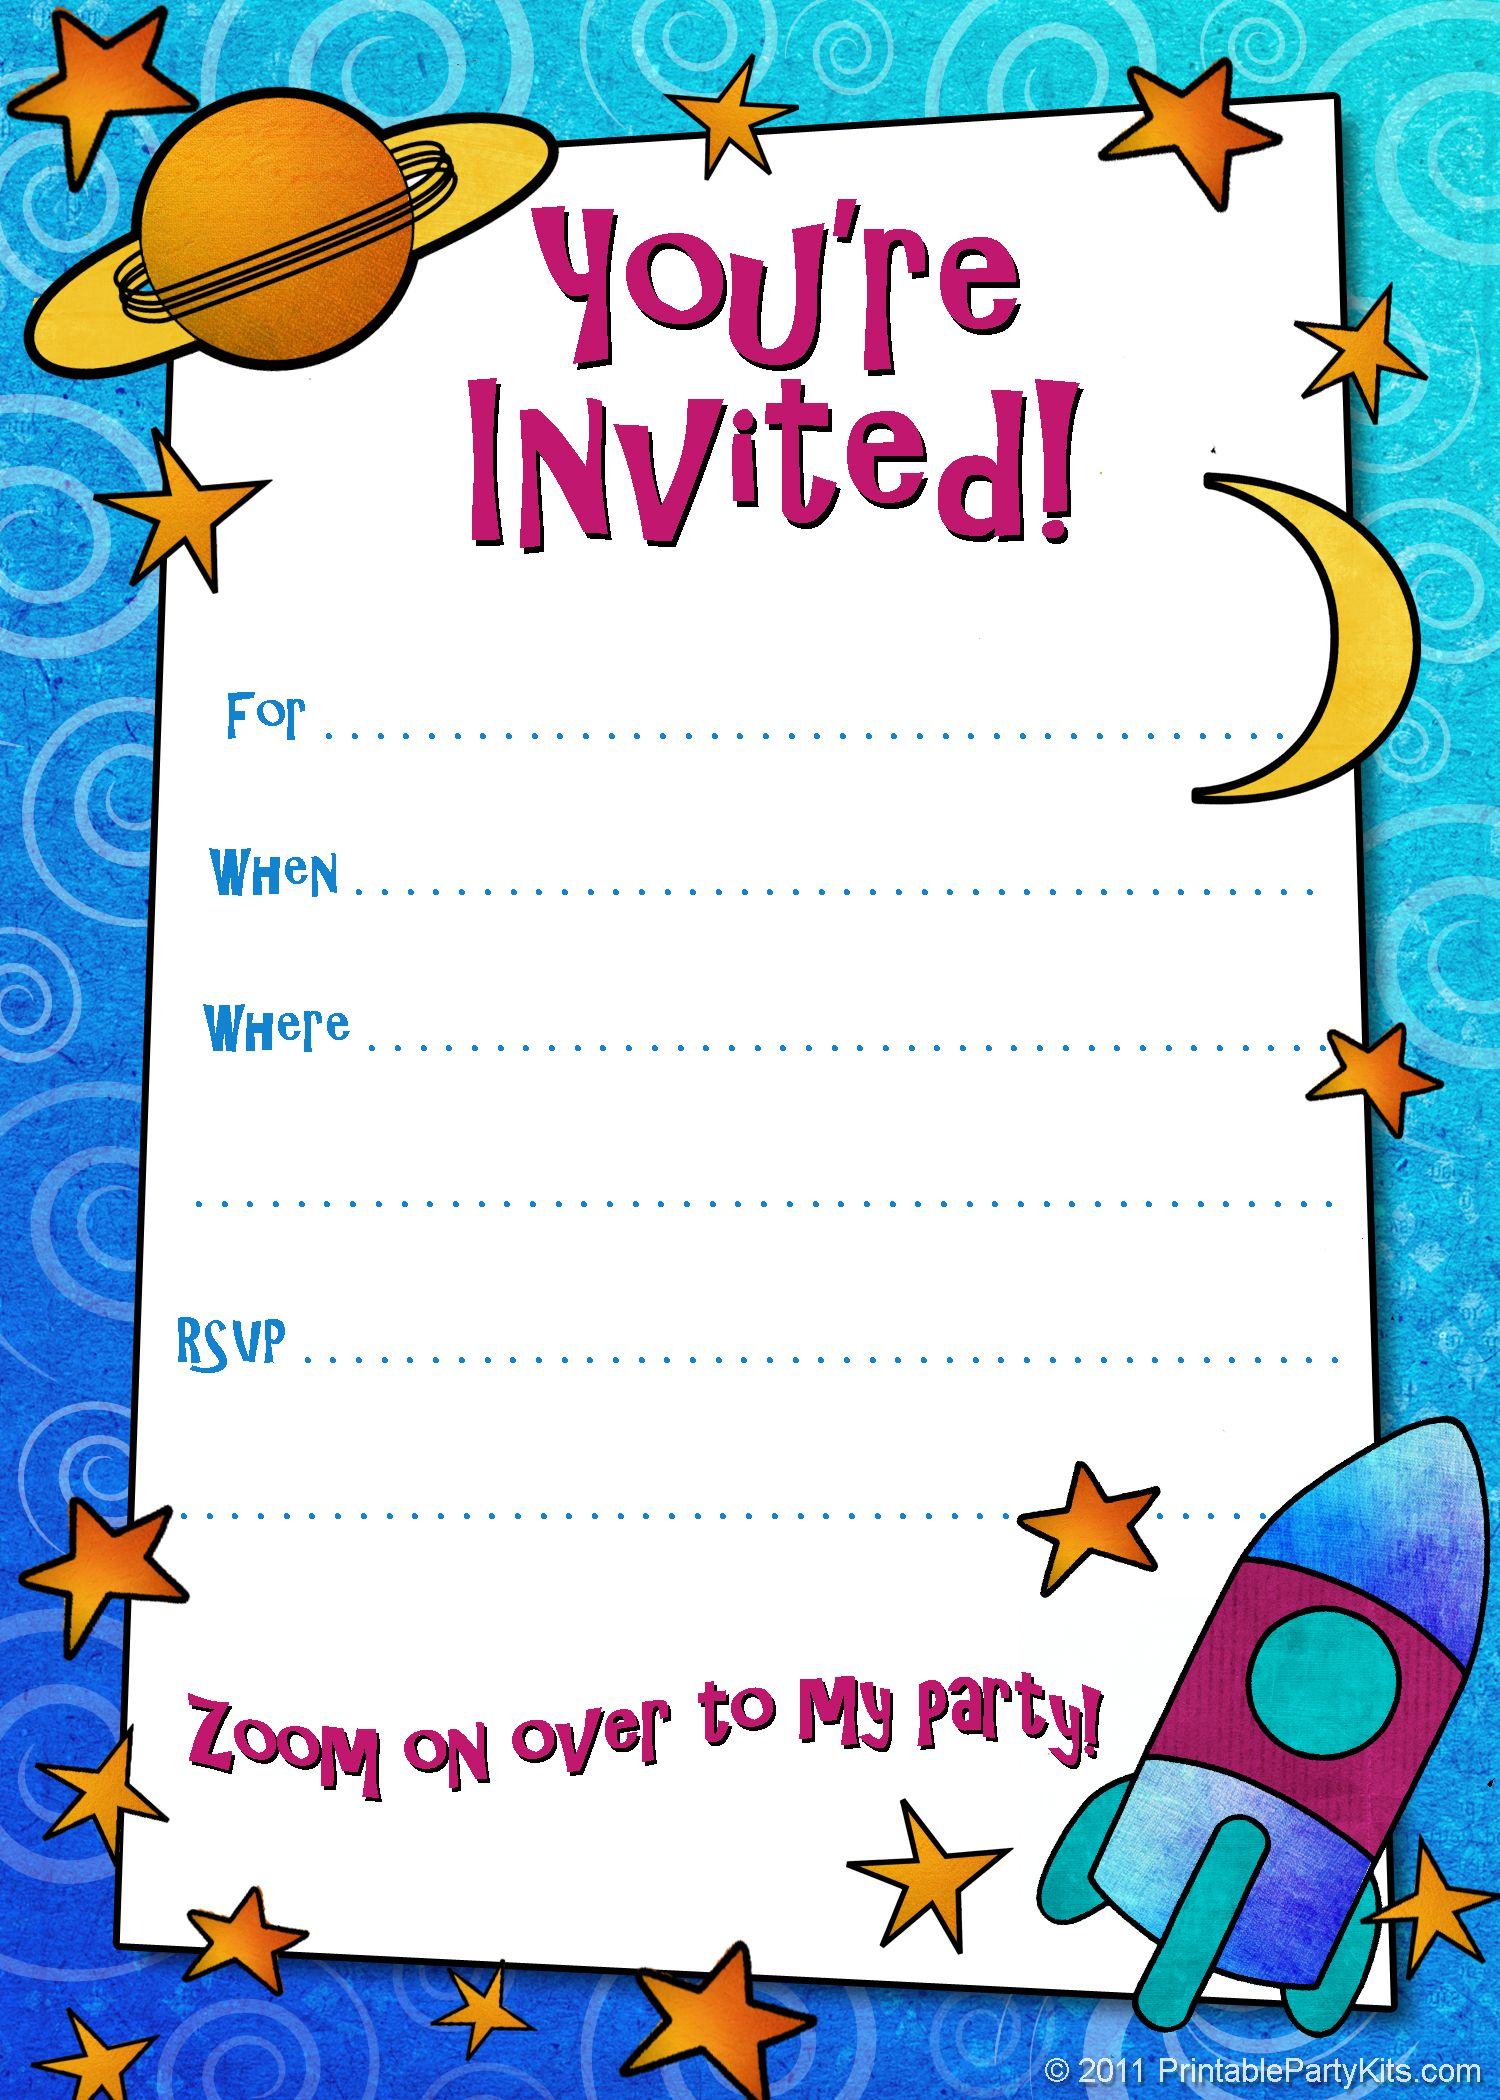 printable boys birthday party invitations birthday party wordplay hubpages com hub boys birthday middot birthday invitations printablespace